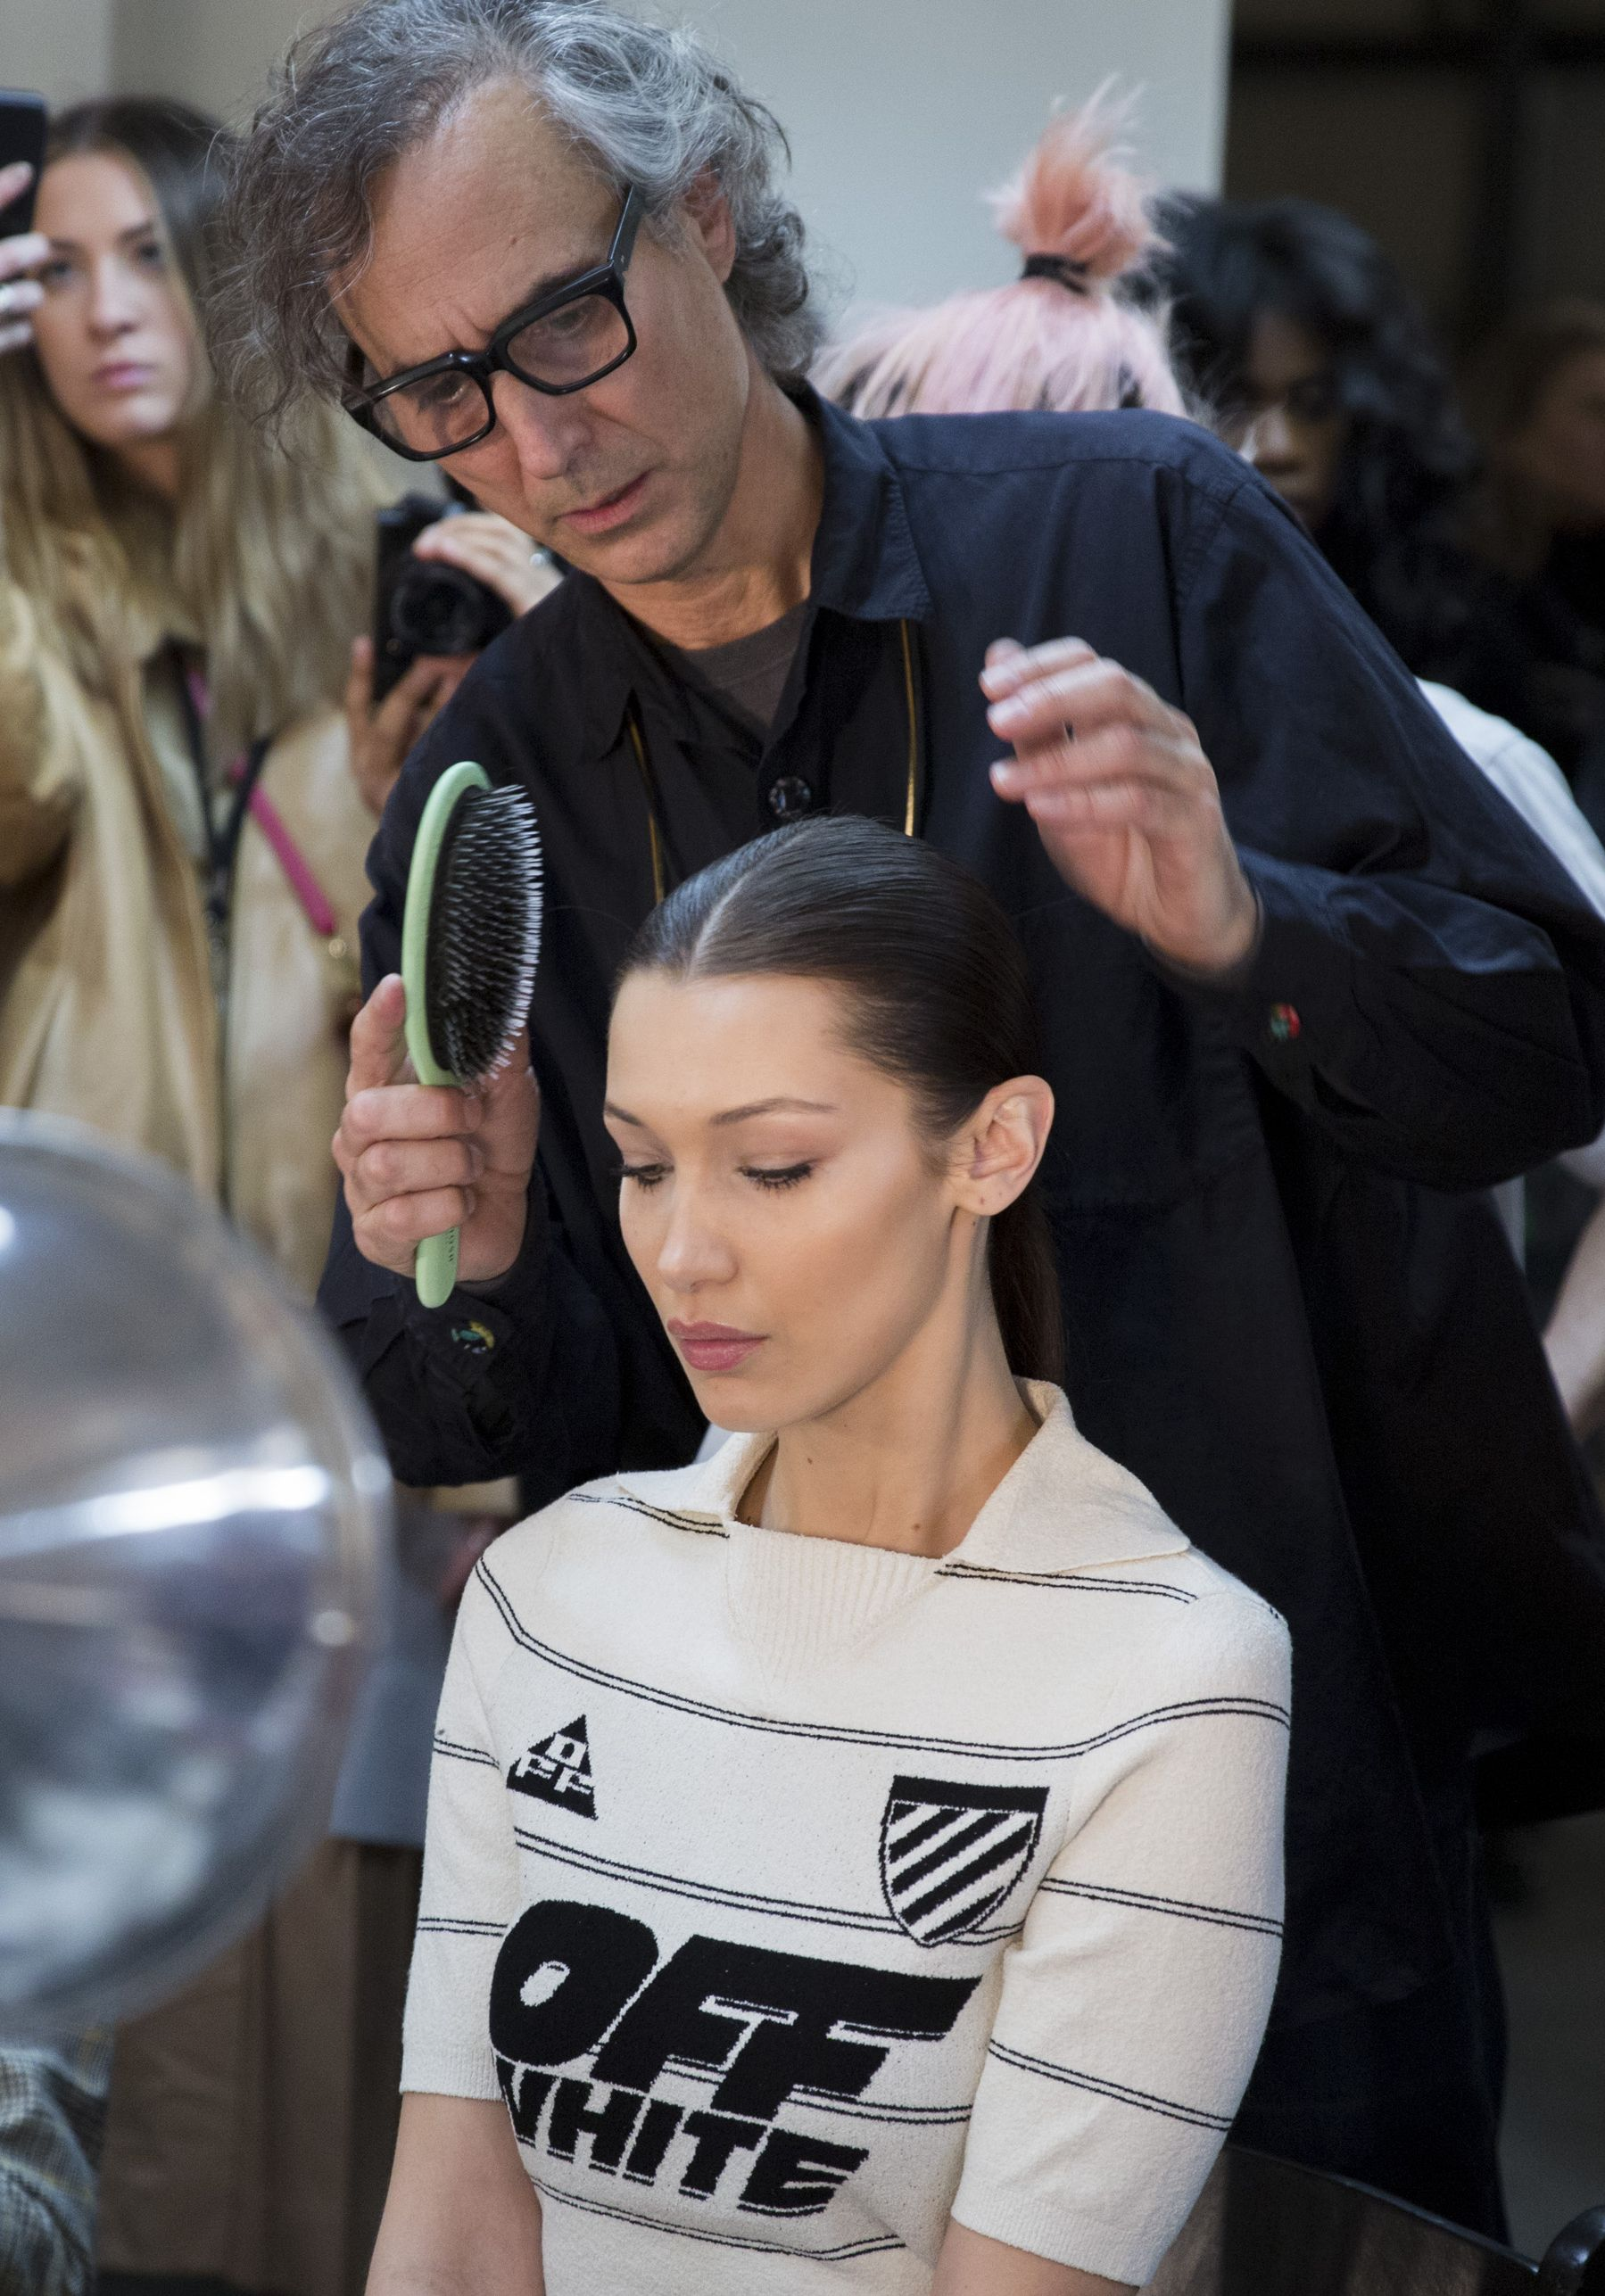 backstage at new york fashion week february 2019